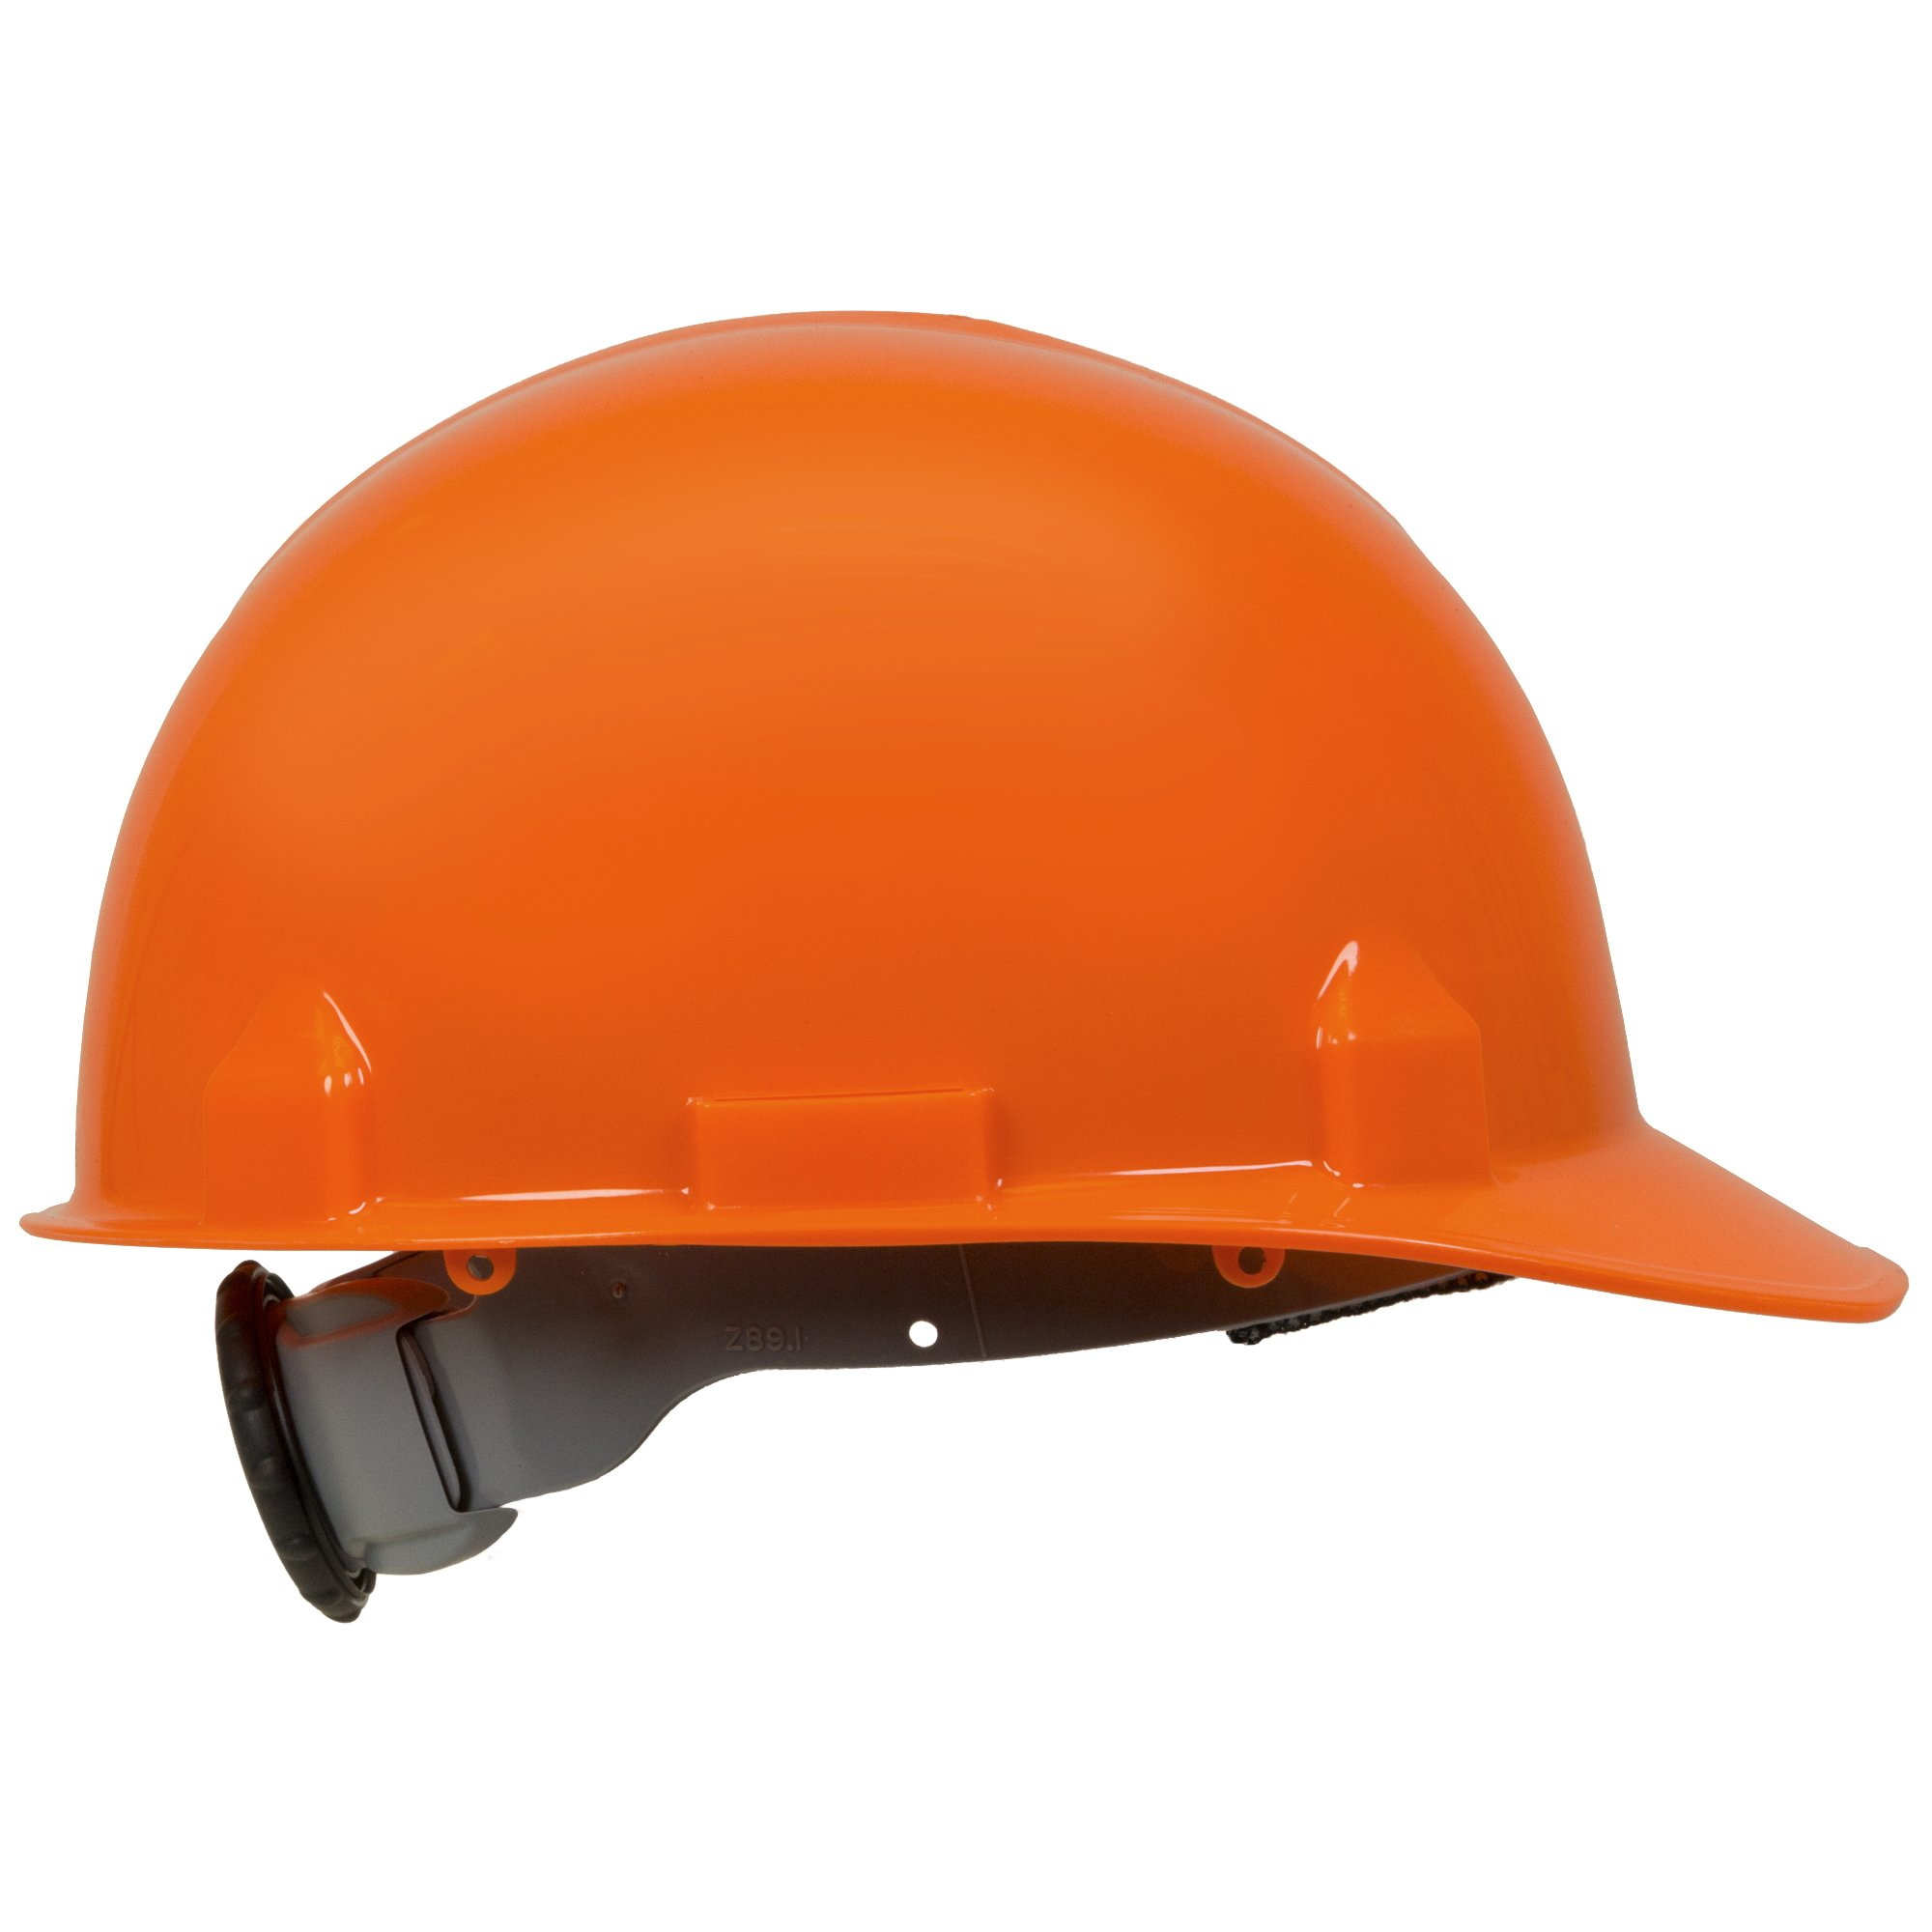 Jackson Safety SC-6 Hard Hat (14839), 4-Point Ratchet Suspension, Smooth Dome, Meets ANSI, Orange, 12 / Case by Jackson Safety (Image #3)